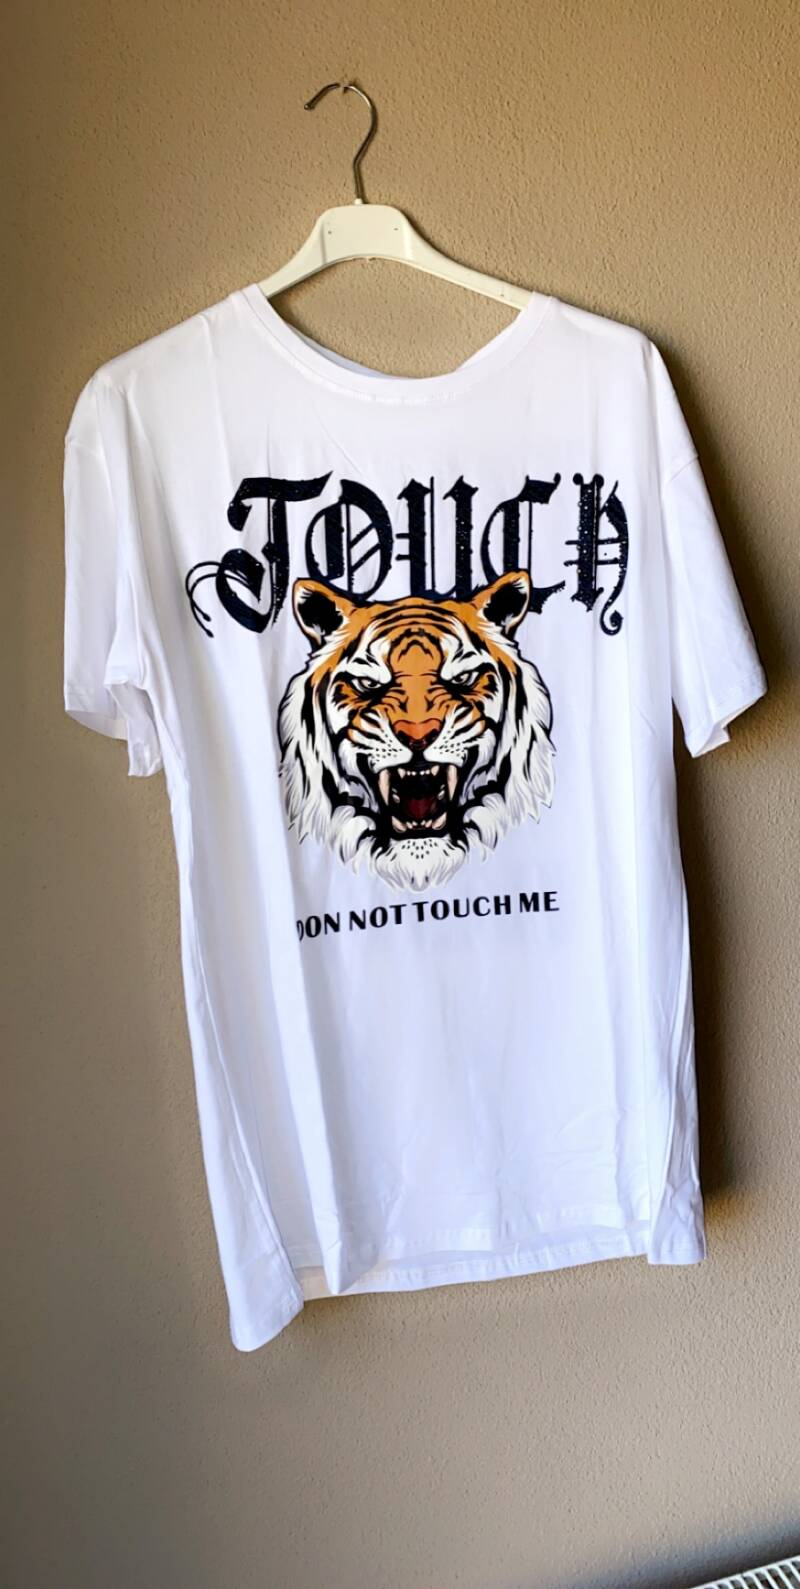 Shirt Toger touch